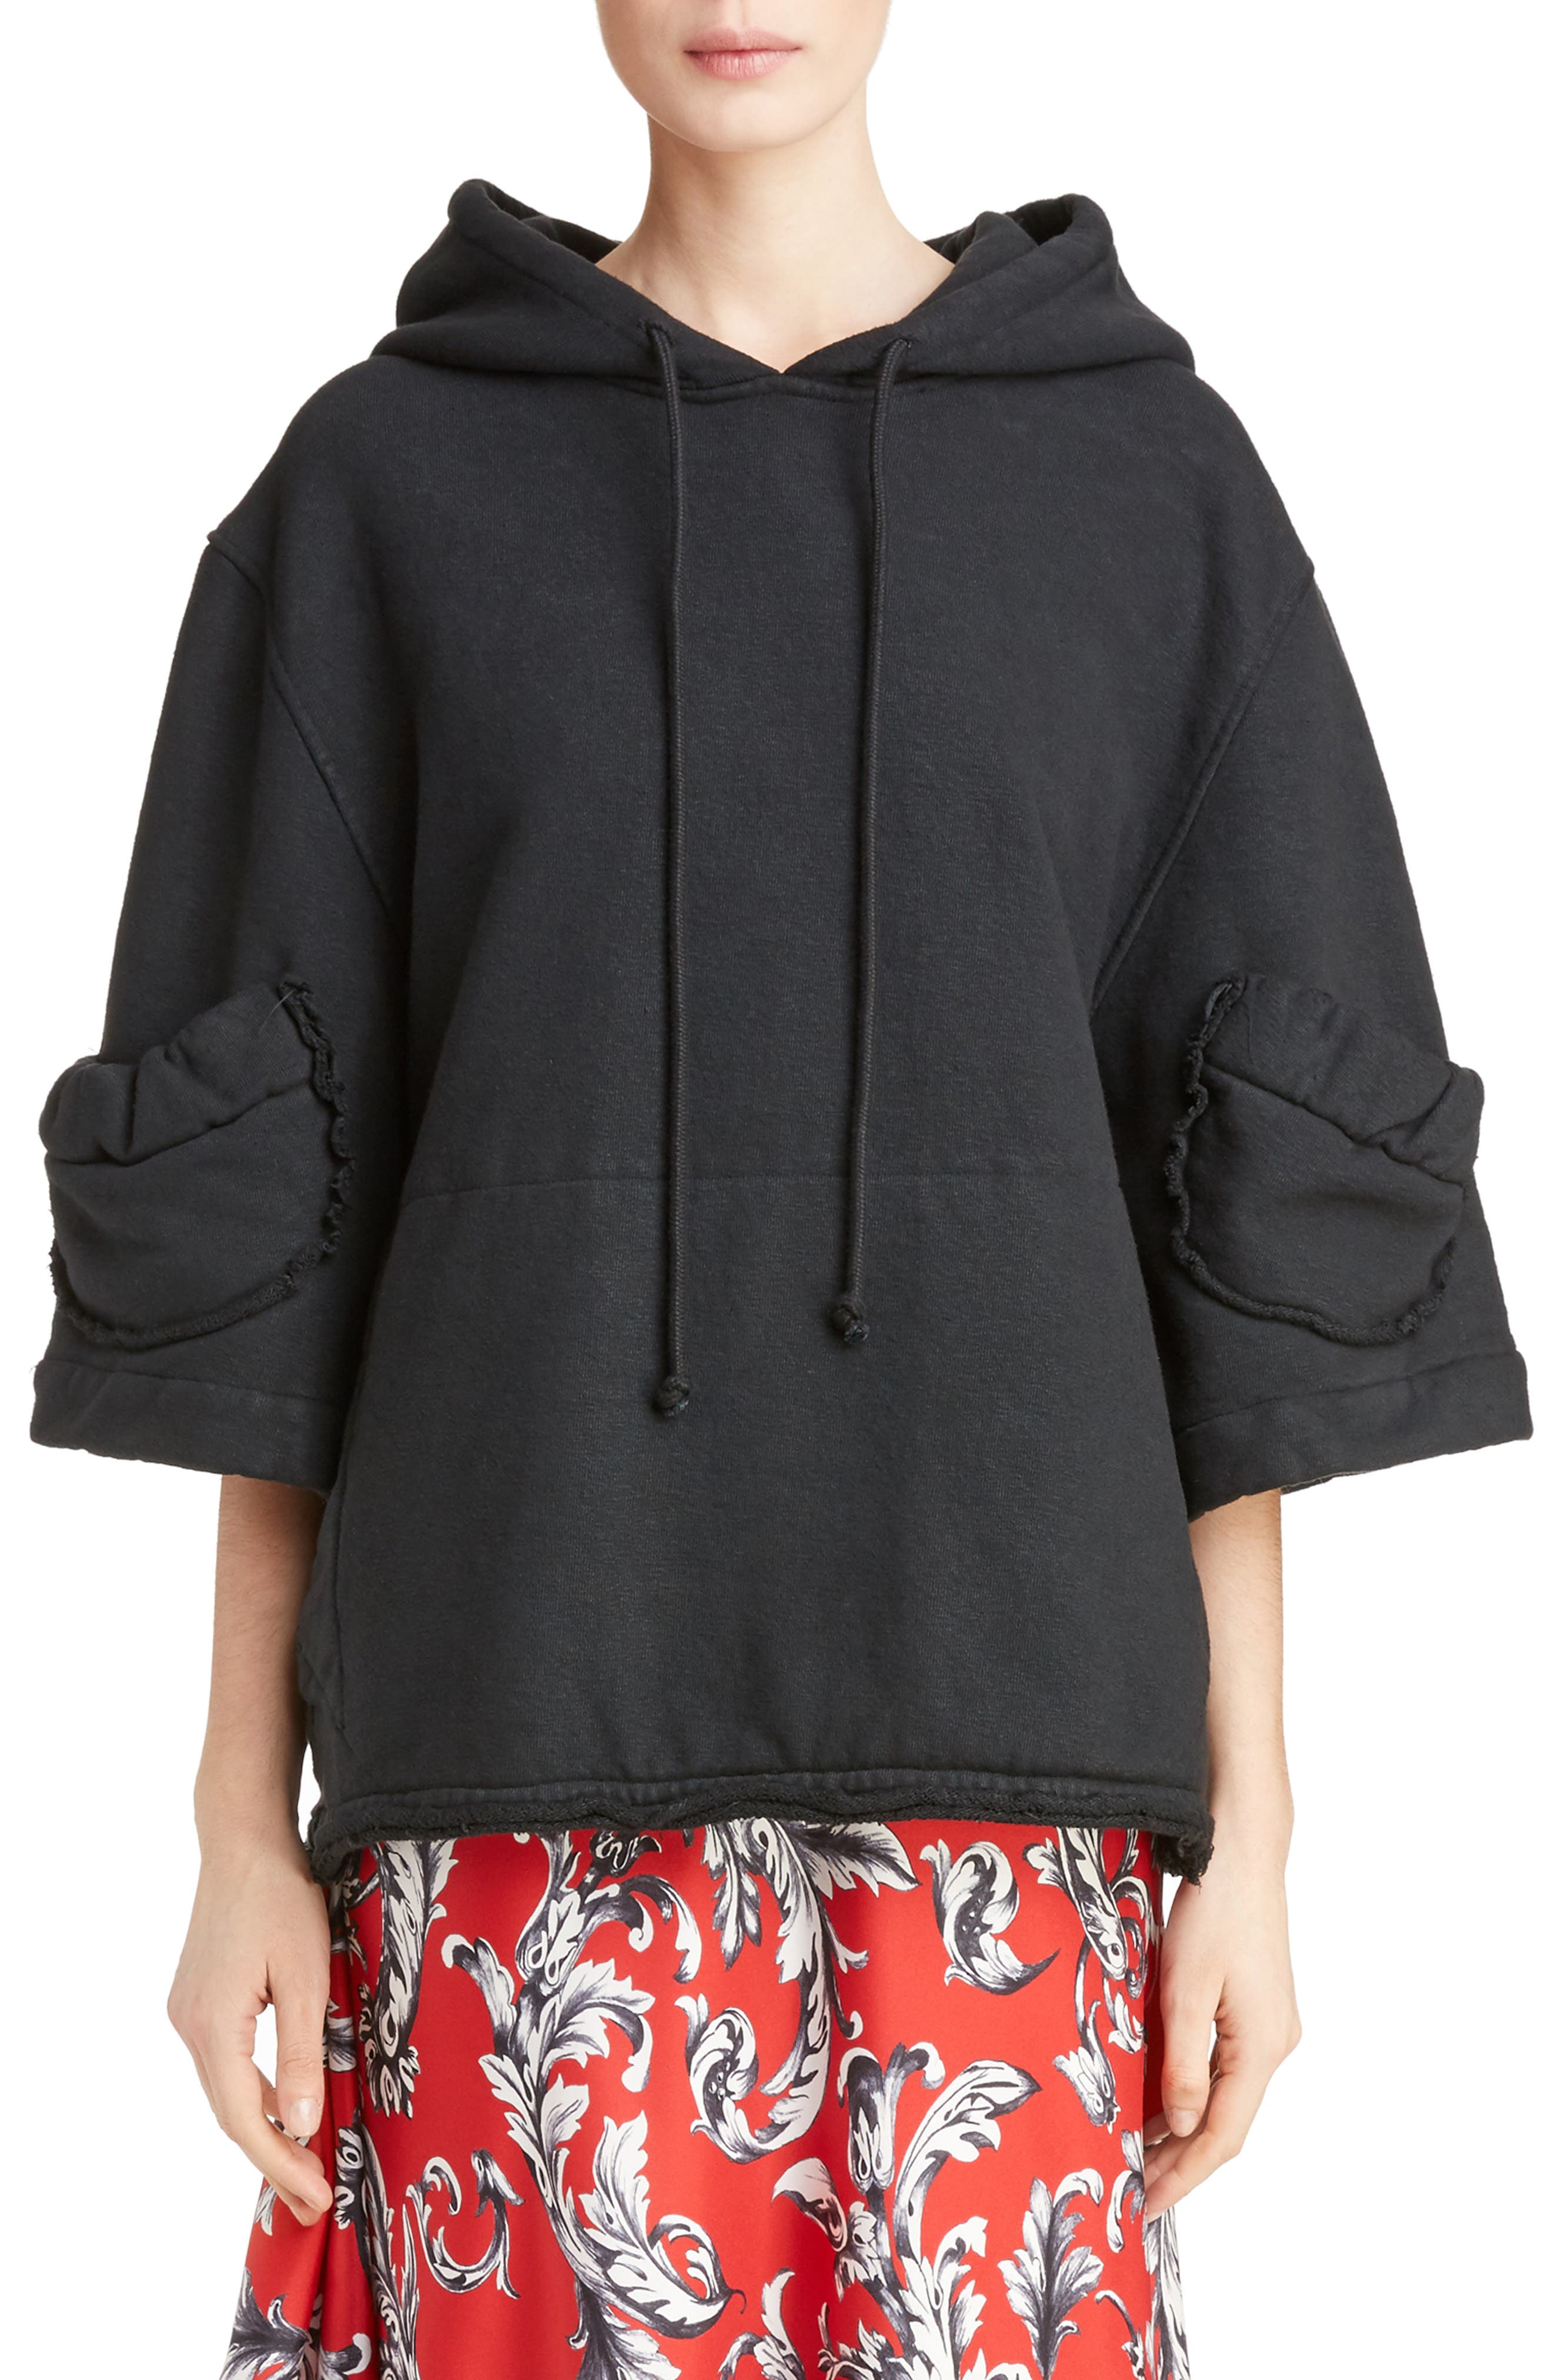 J.W.ANDERSON Oversized Crop Hoodie,                             Main thumbnail 1, color,                             001